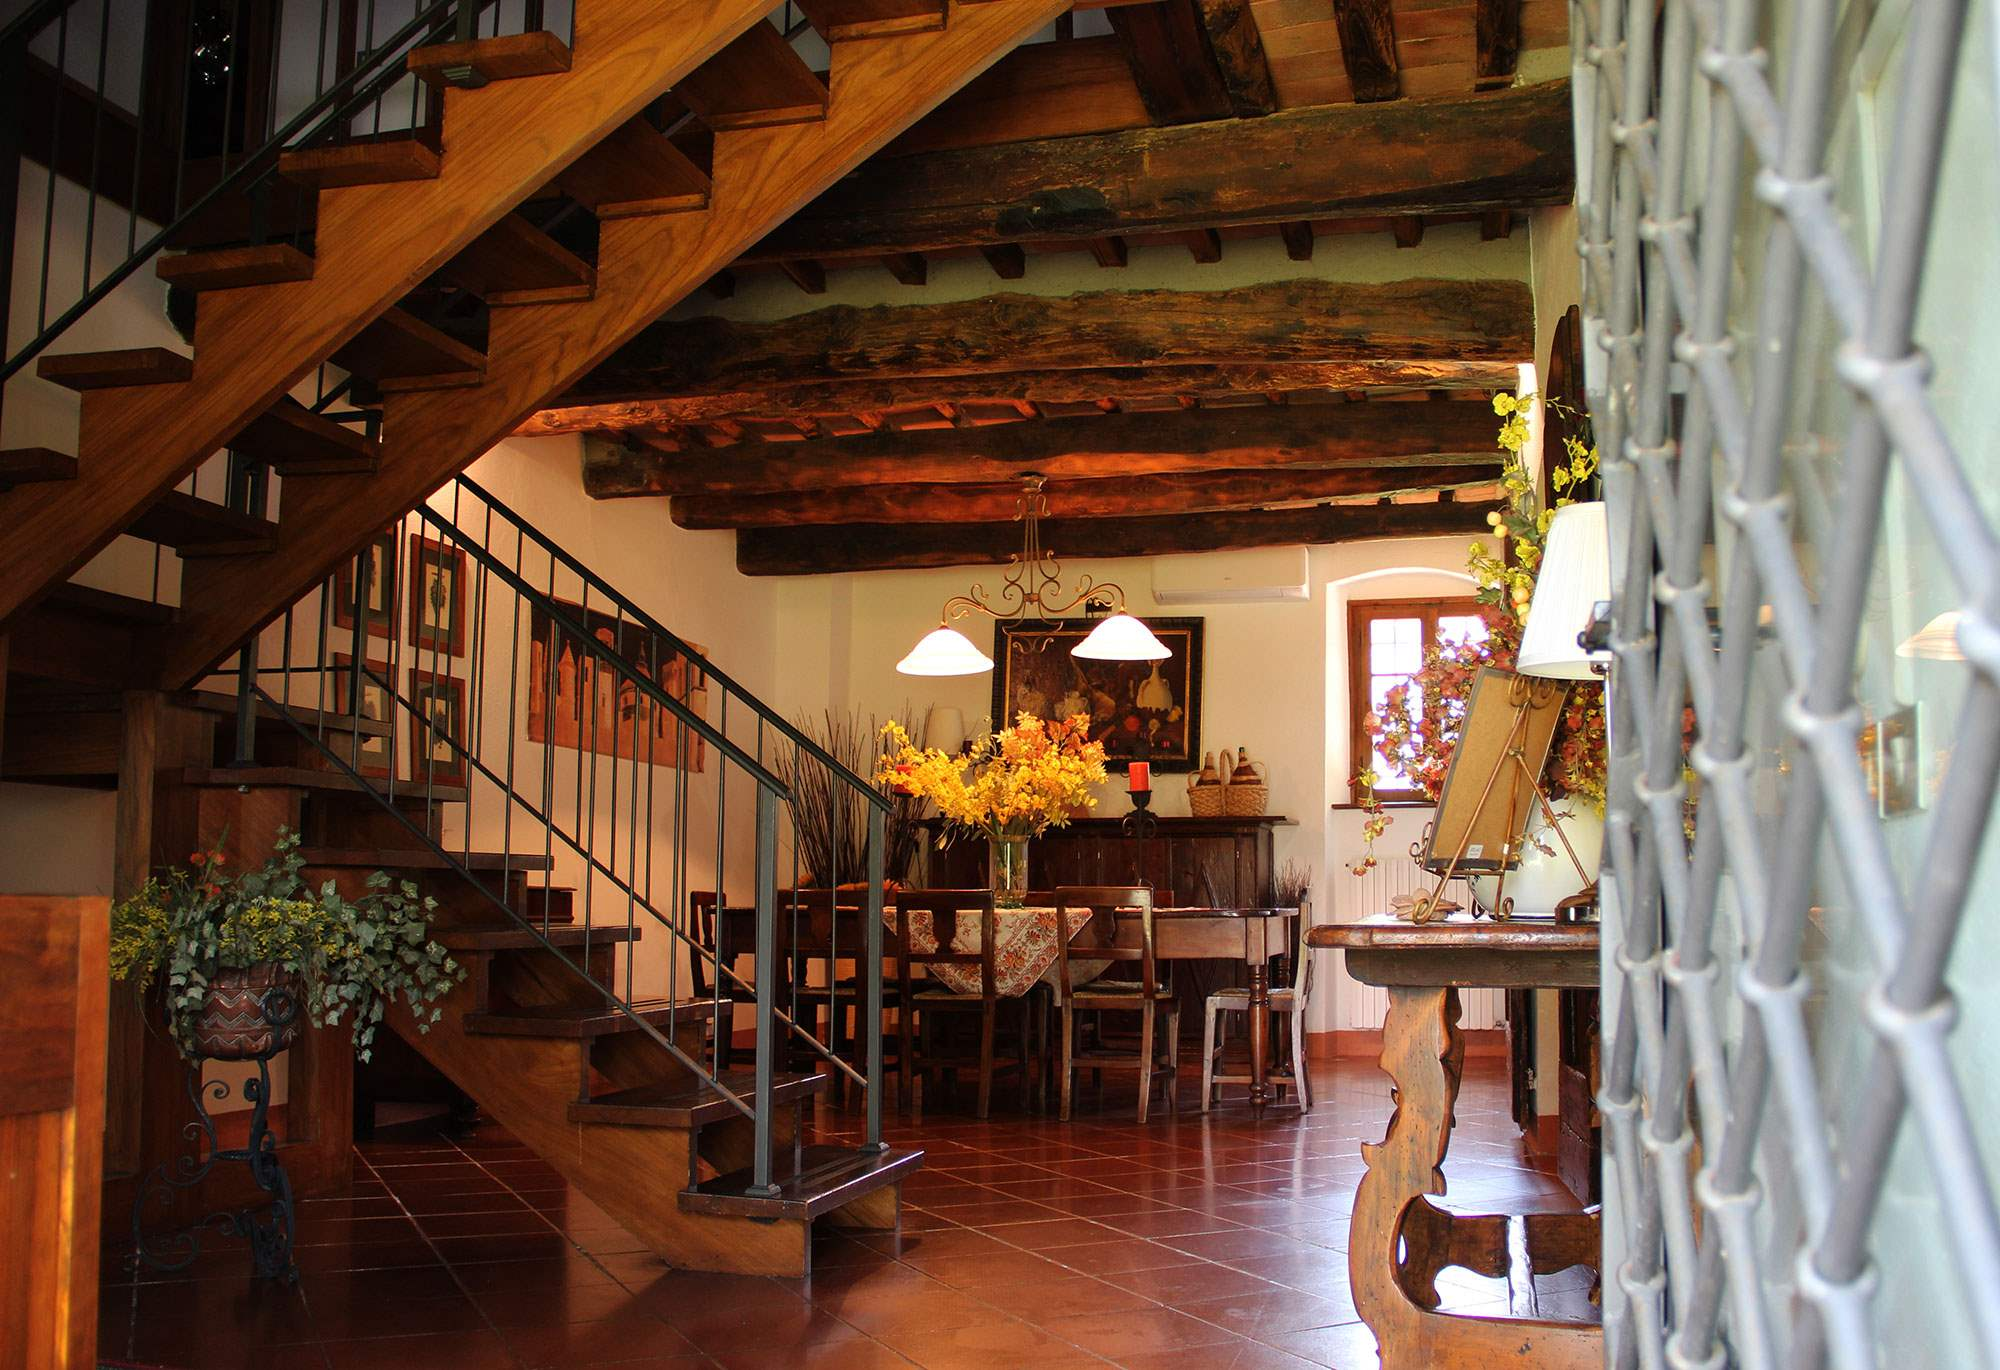 Villa Felicita, Main house and apartment, 10 persons rate, 5 bedroom villa in Chianti & Countryside, Tuscany Photo #7